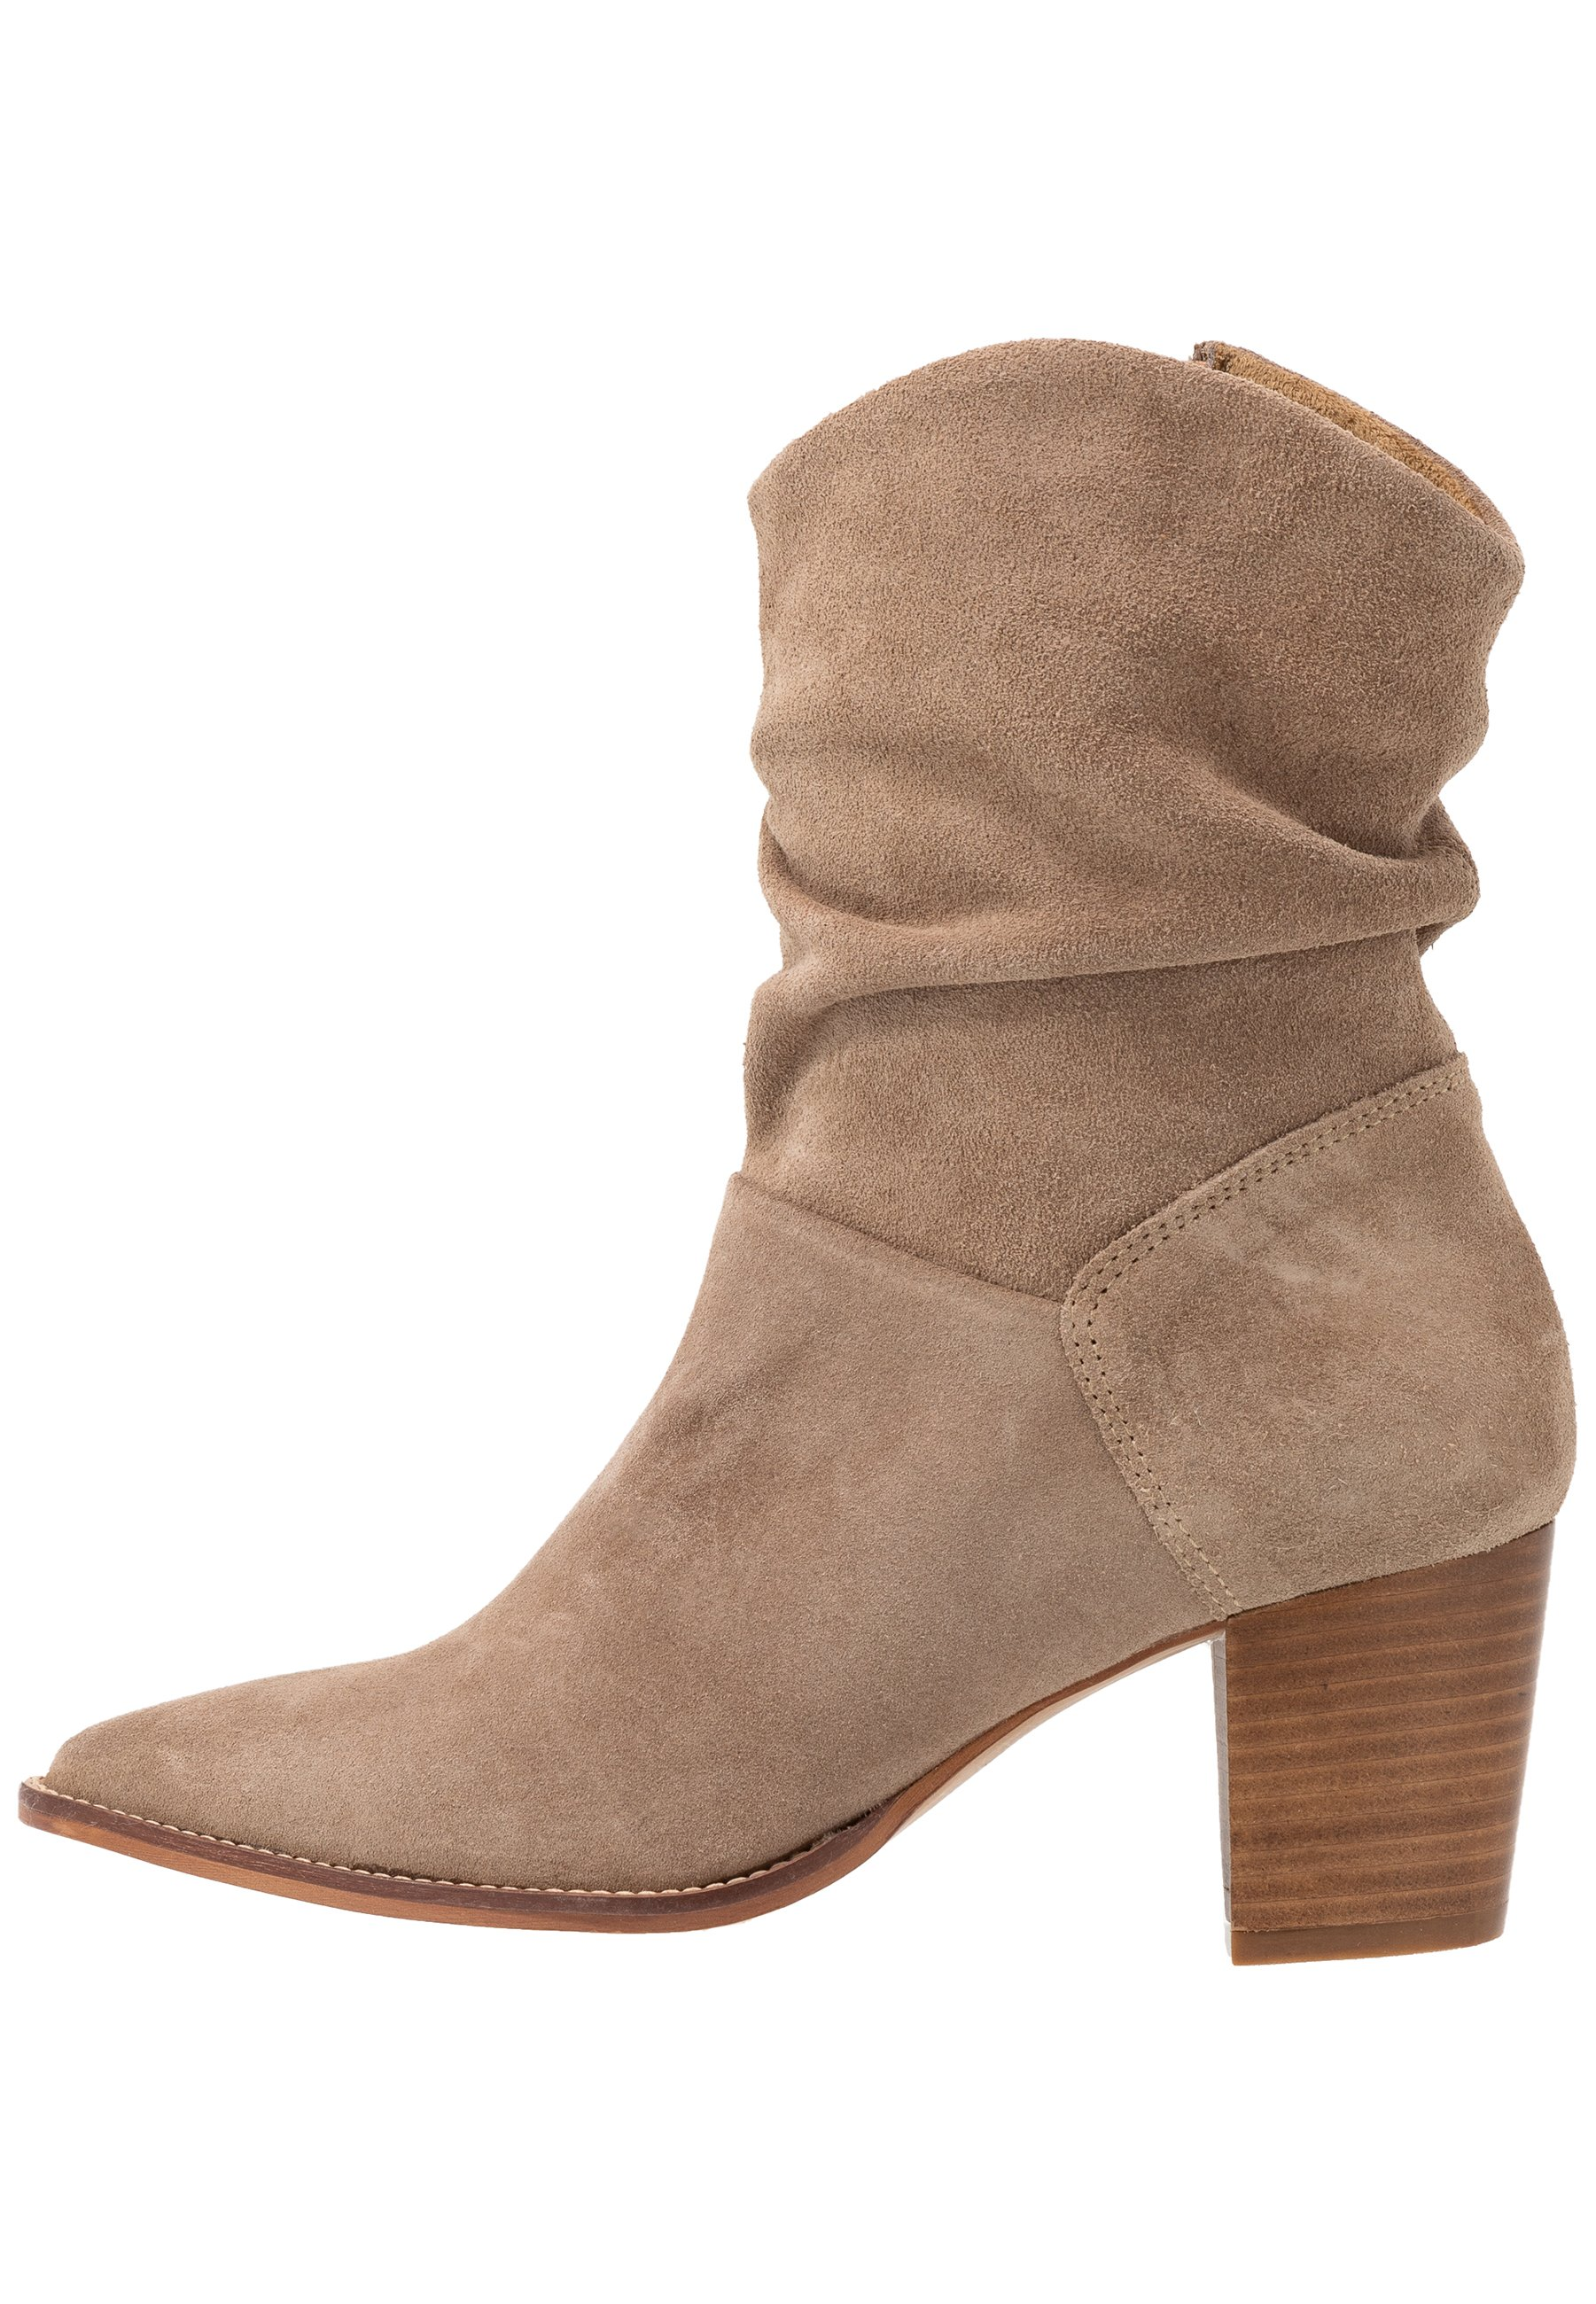 Anna Field Leather Classic Ankle Boots - Støvletter Taupe